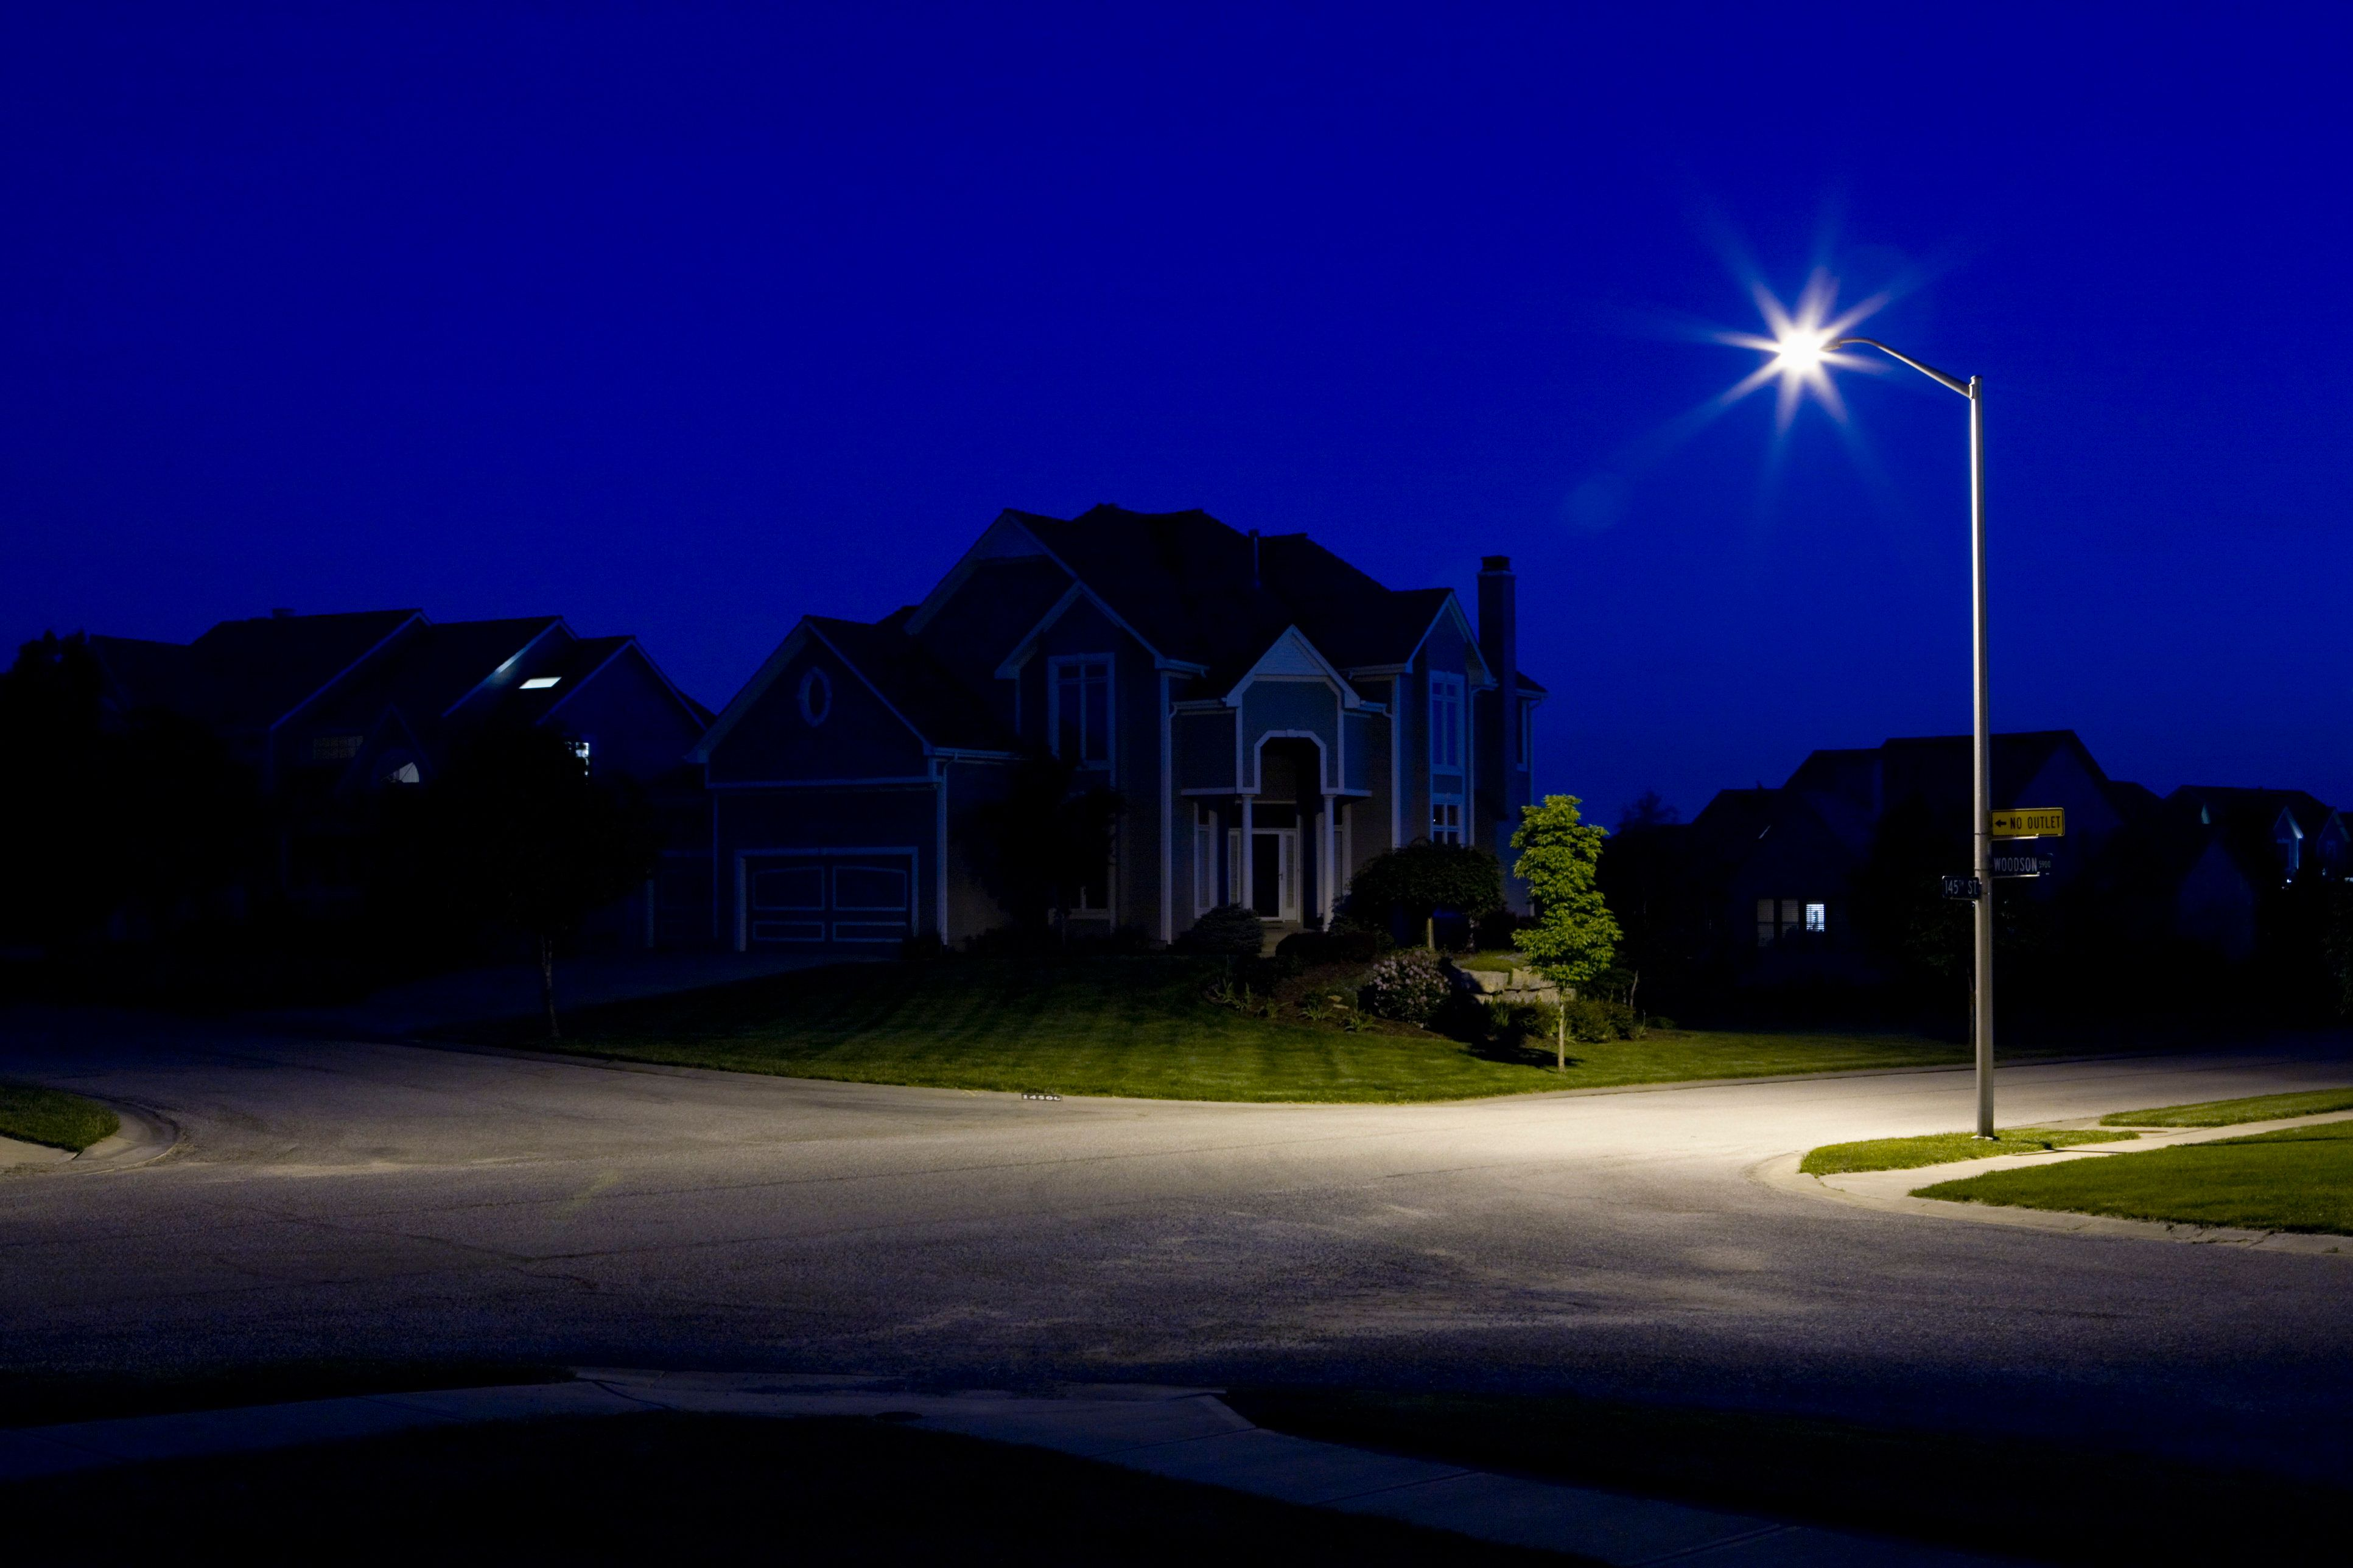 Led Lights Bad Health These Streetlights Are Great For The Planet But Horrible